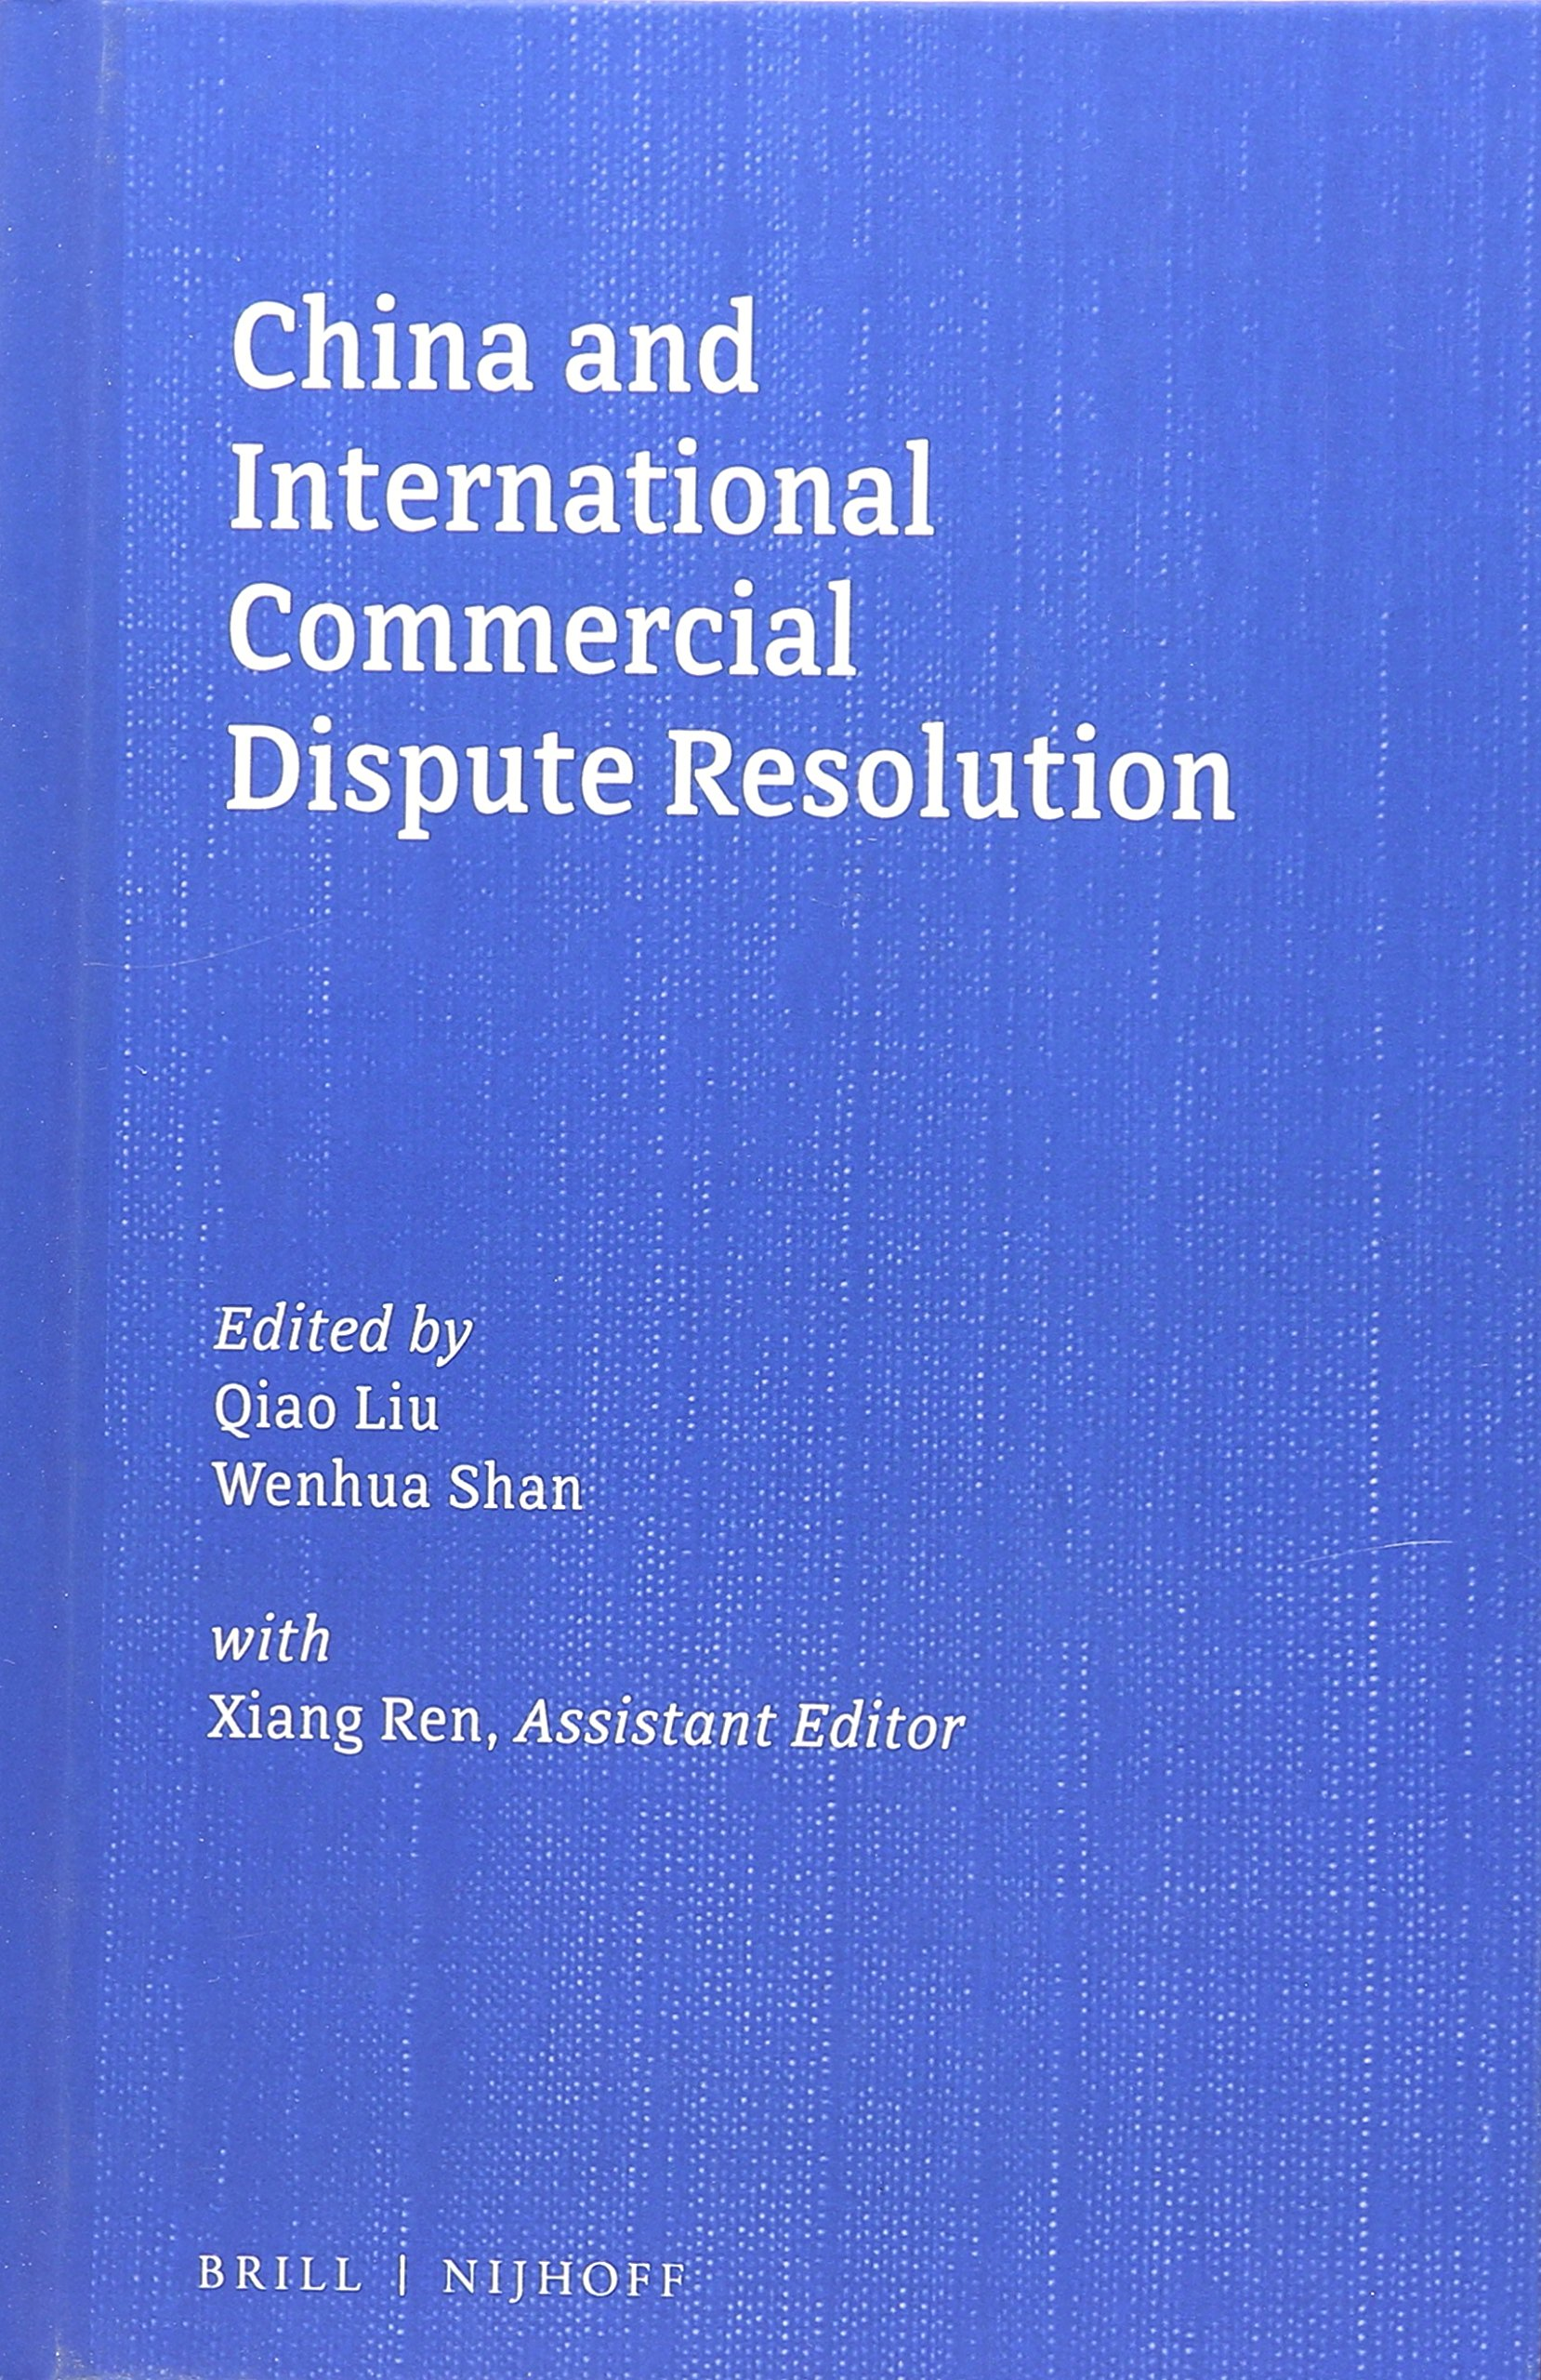 Buy China and International Commercial Dispute Resolution